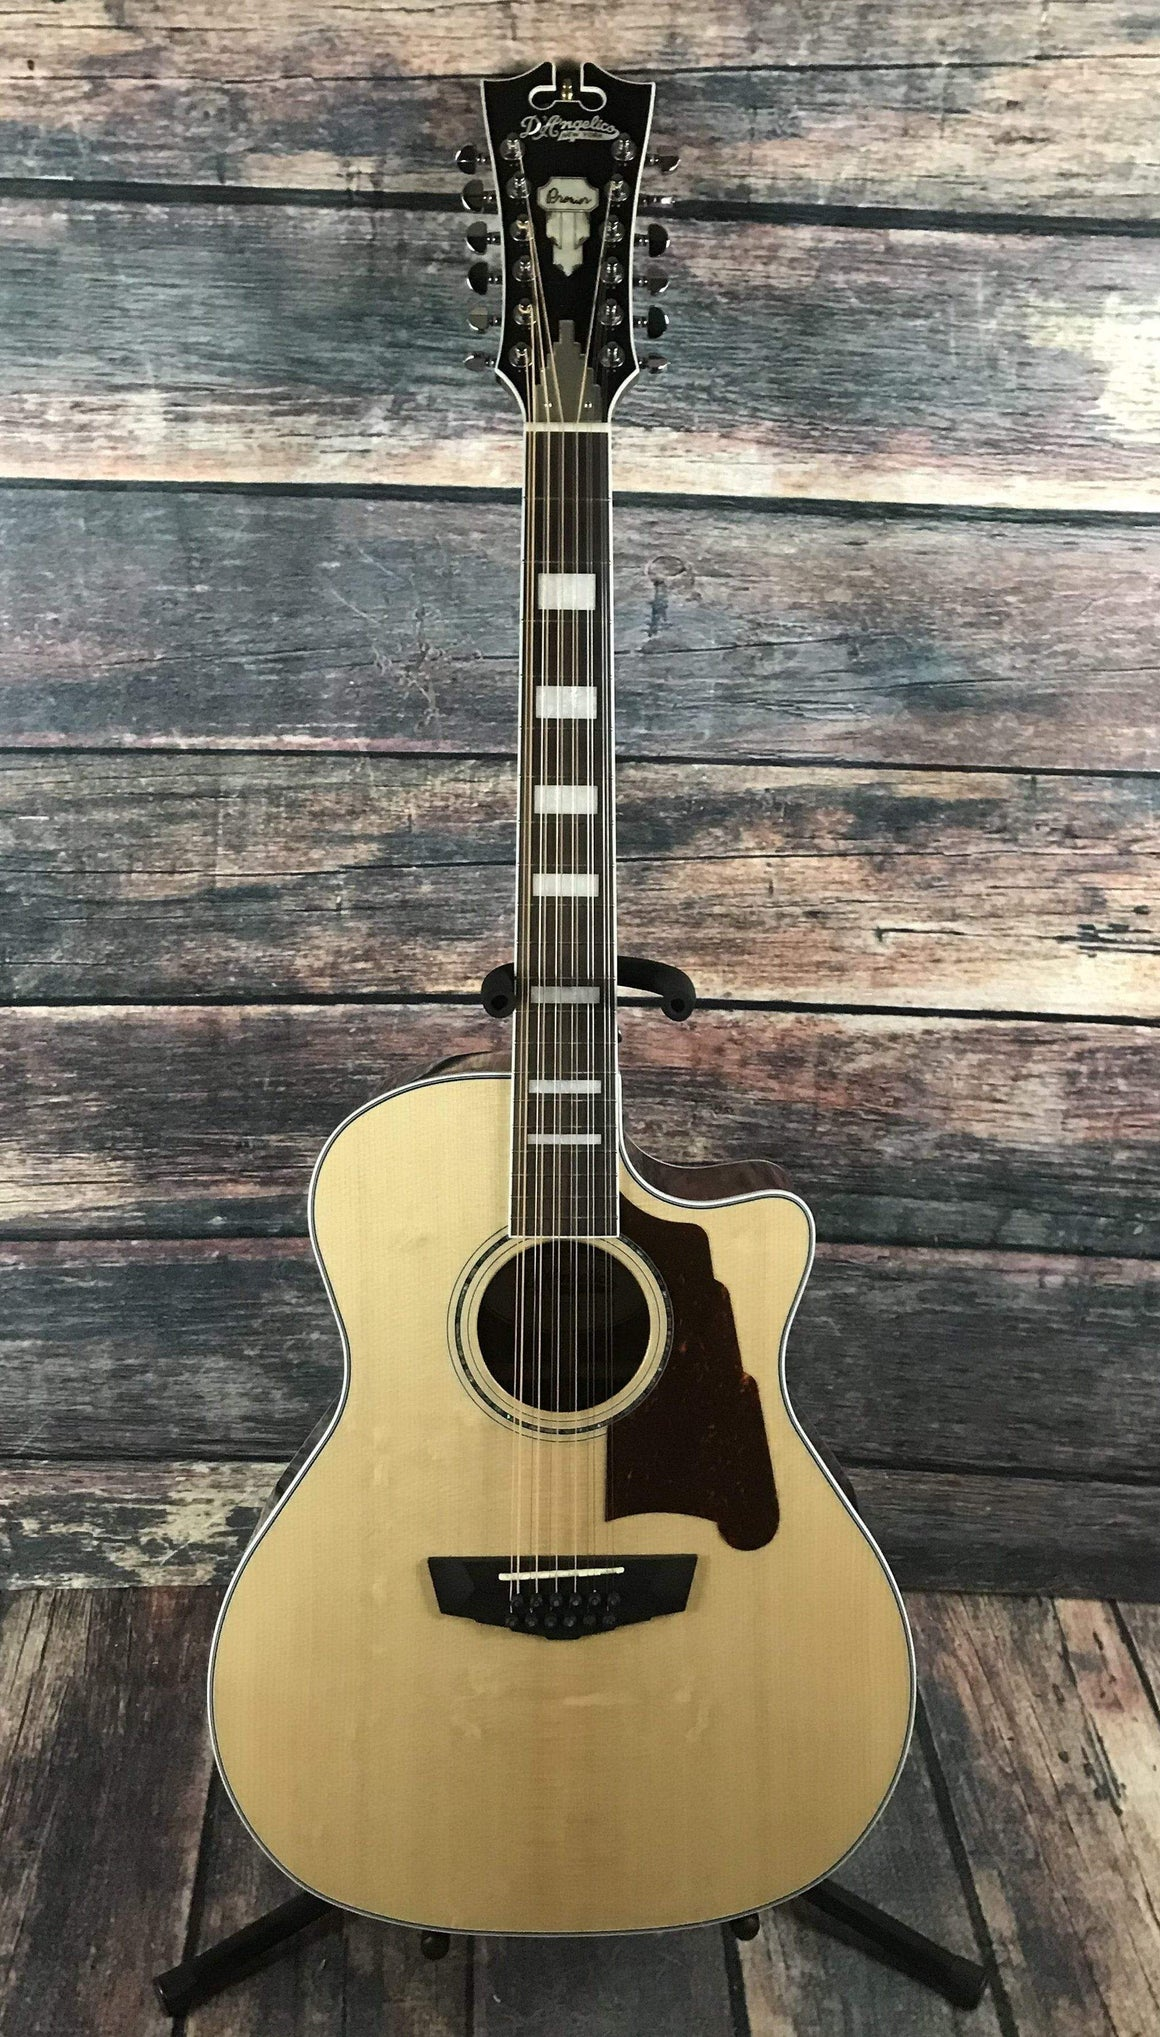 D'Angelico Acoustic Guitar D'Angelico Right Handed Premier Fulton 12 String Acoustic Electric Guitar- Natural